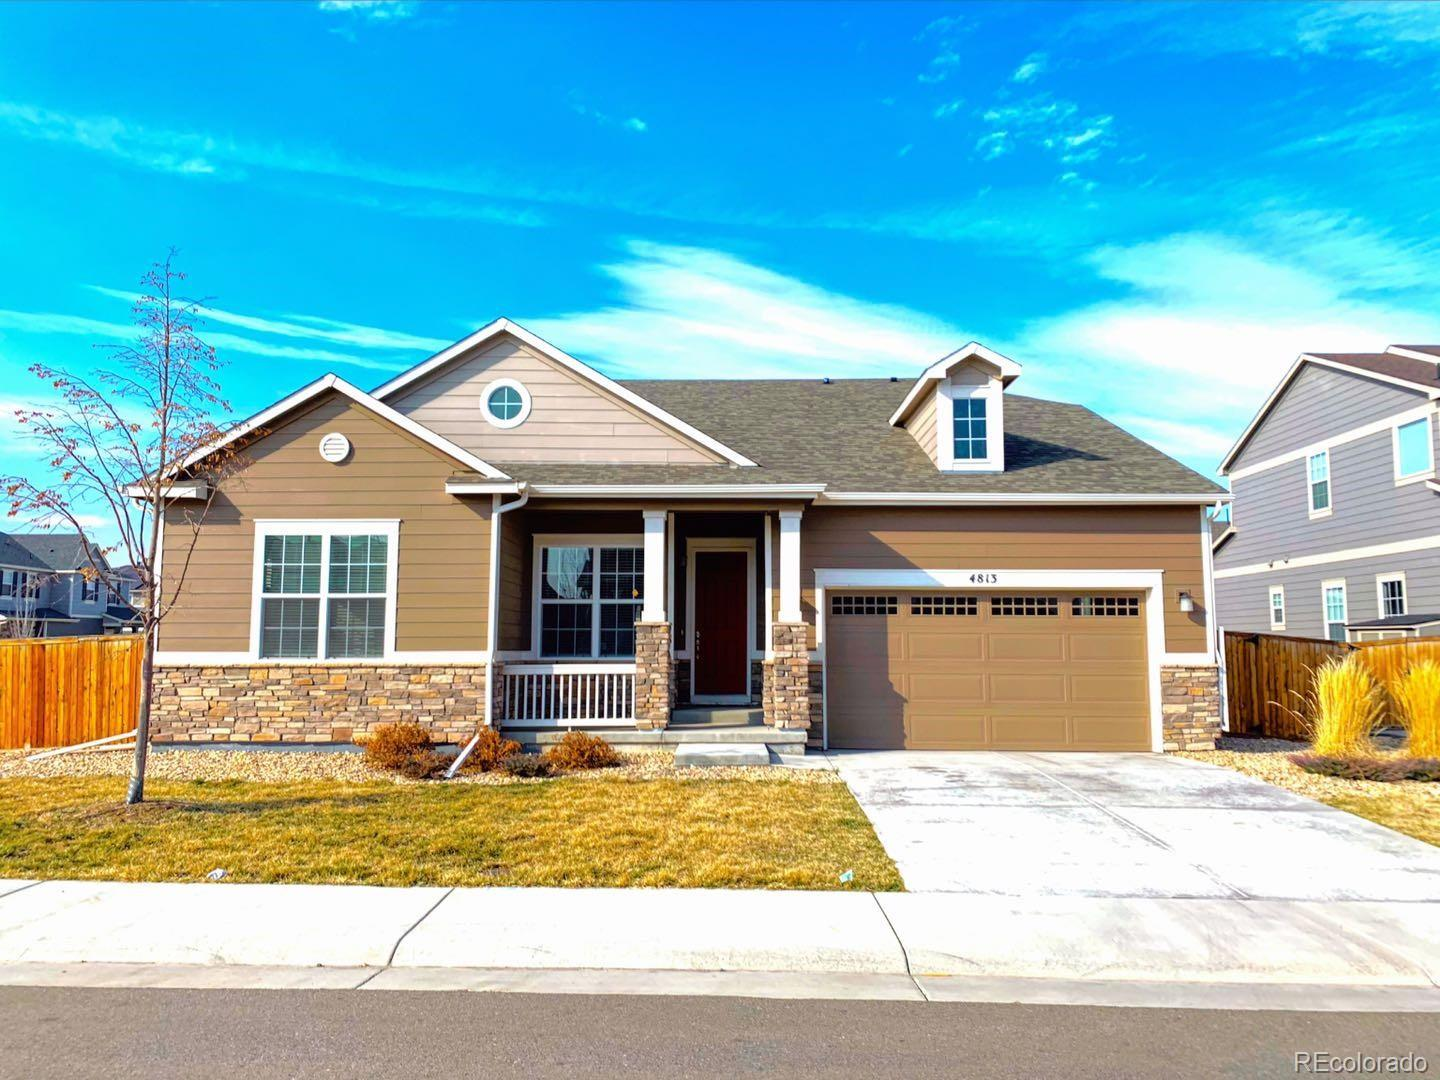 4813 E 142nd Place Property Photo - Thornton, CO real estate listing